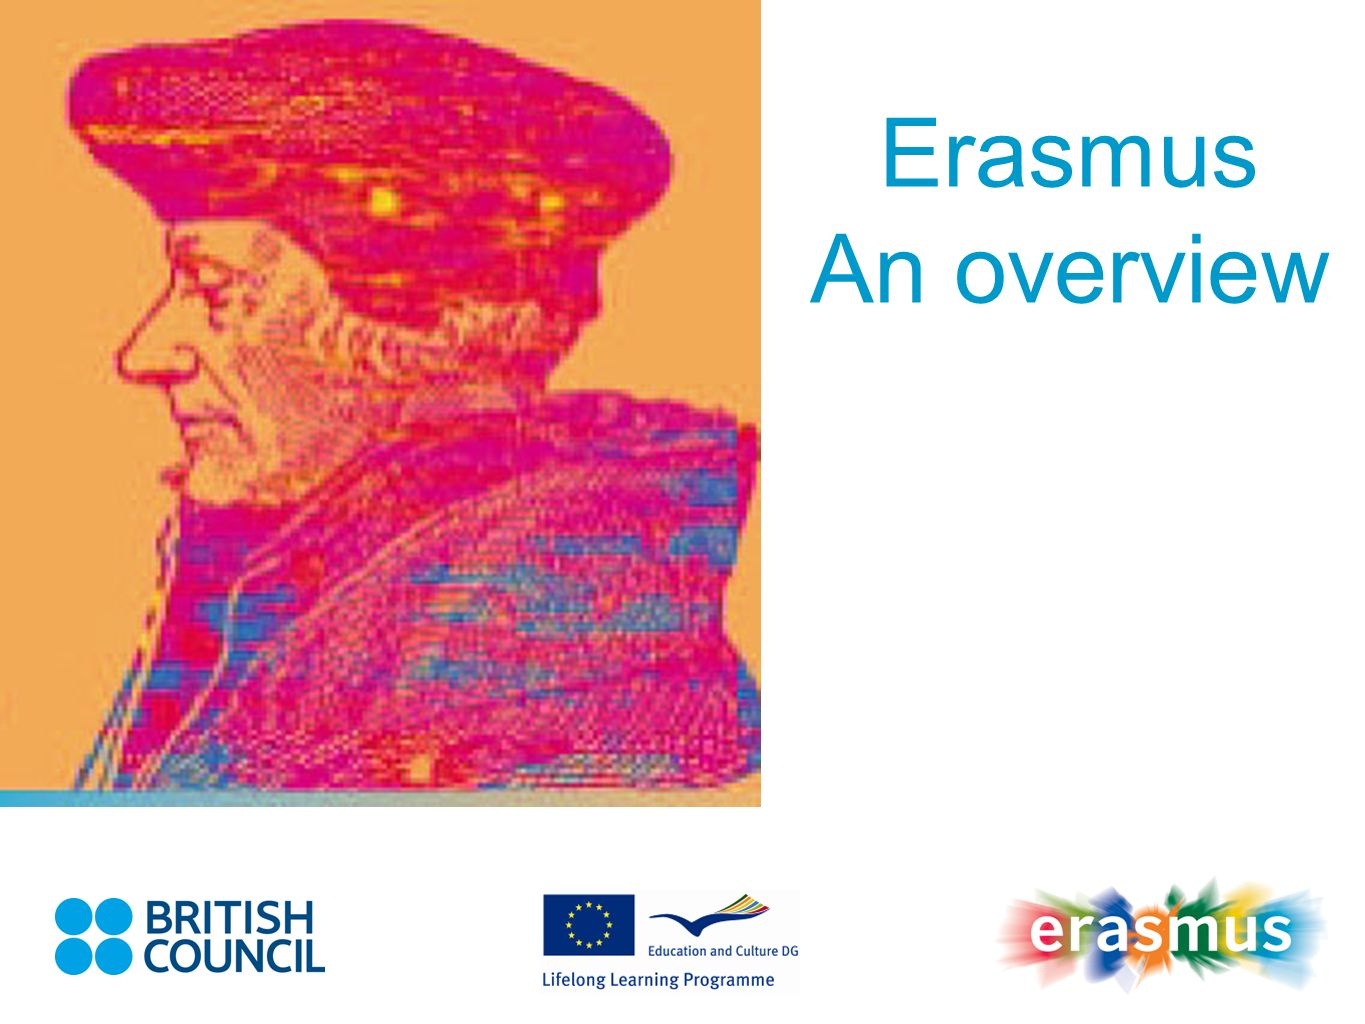 Erasmus An overview